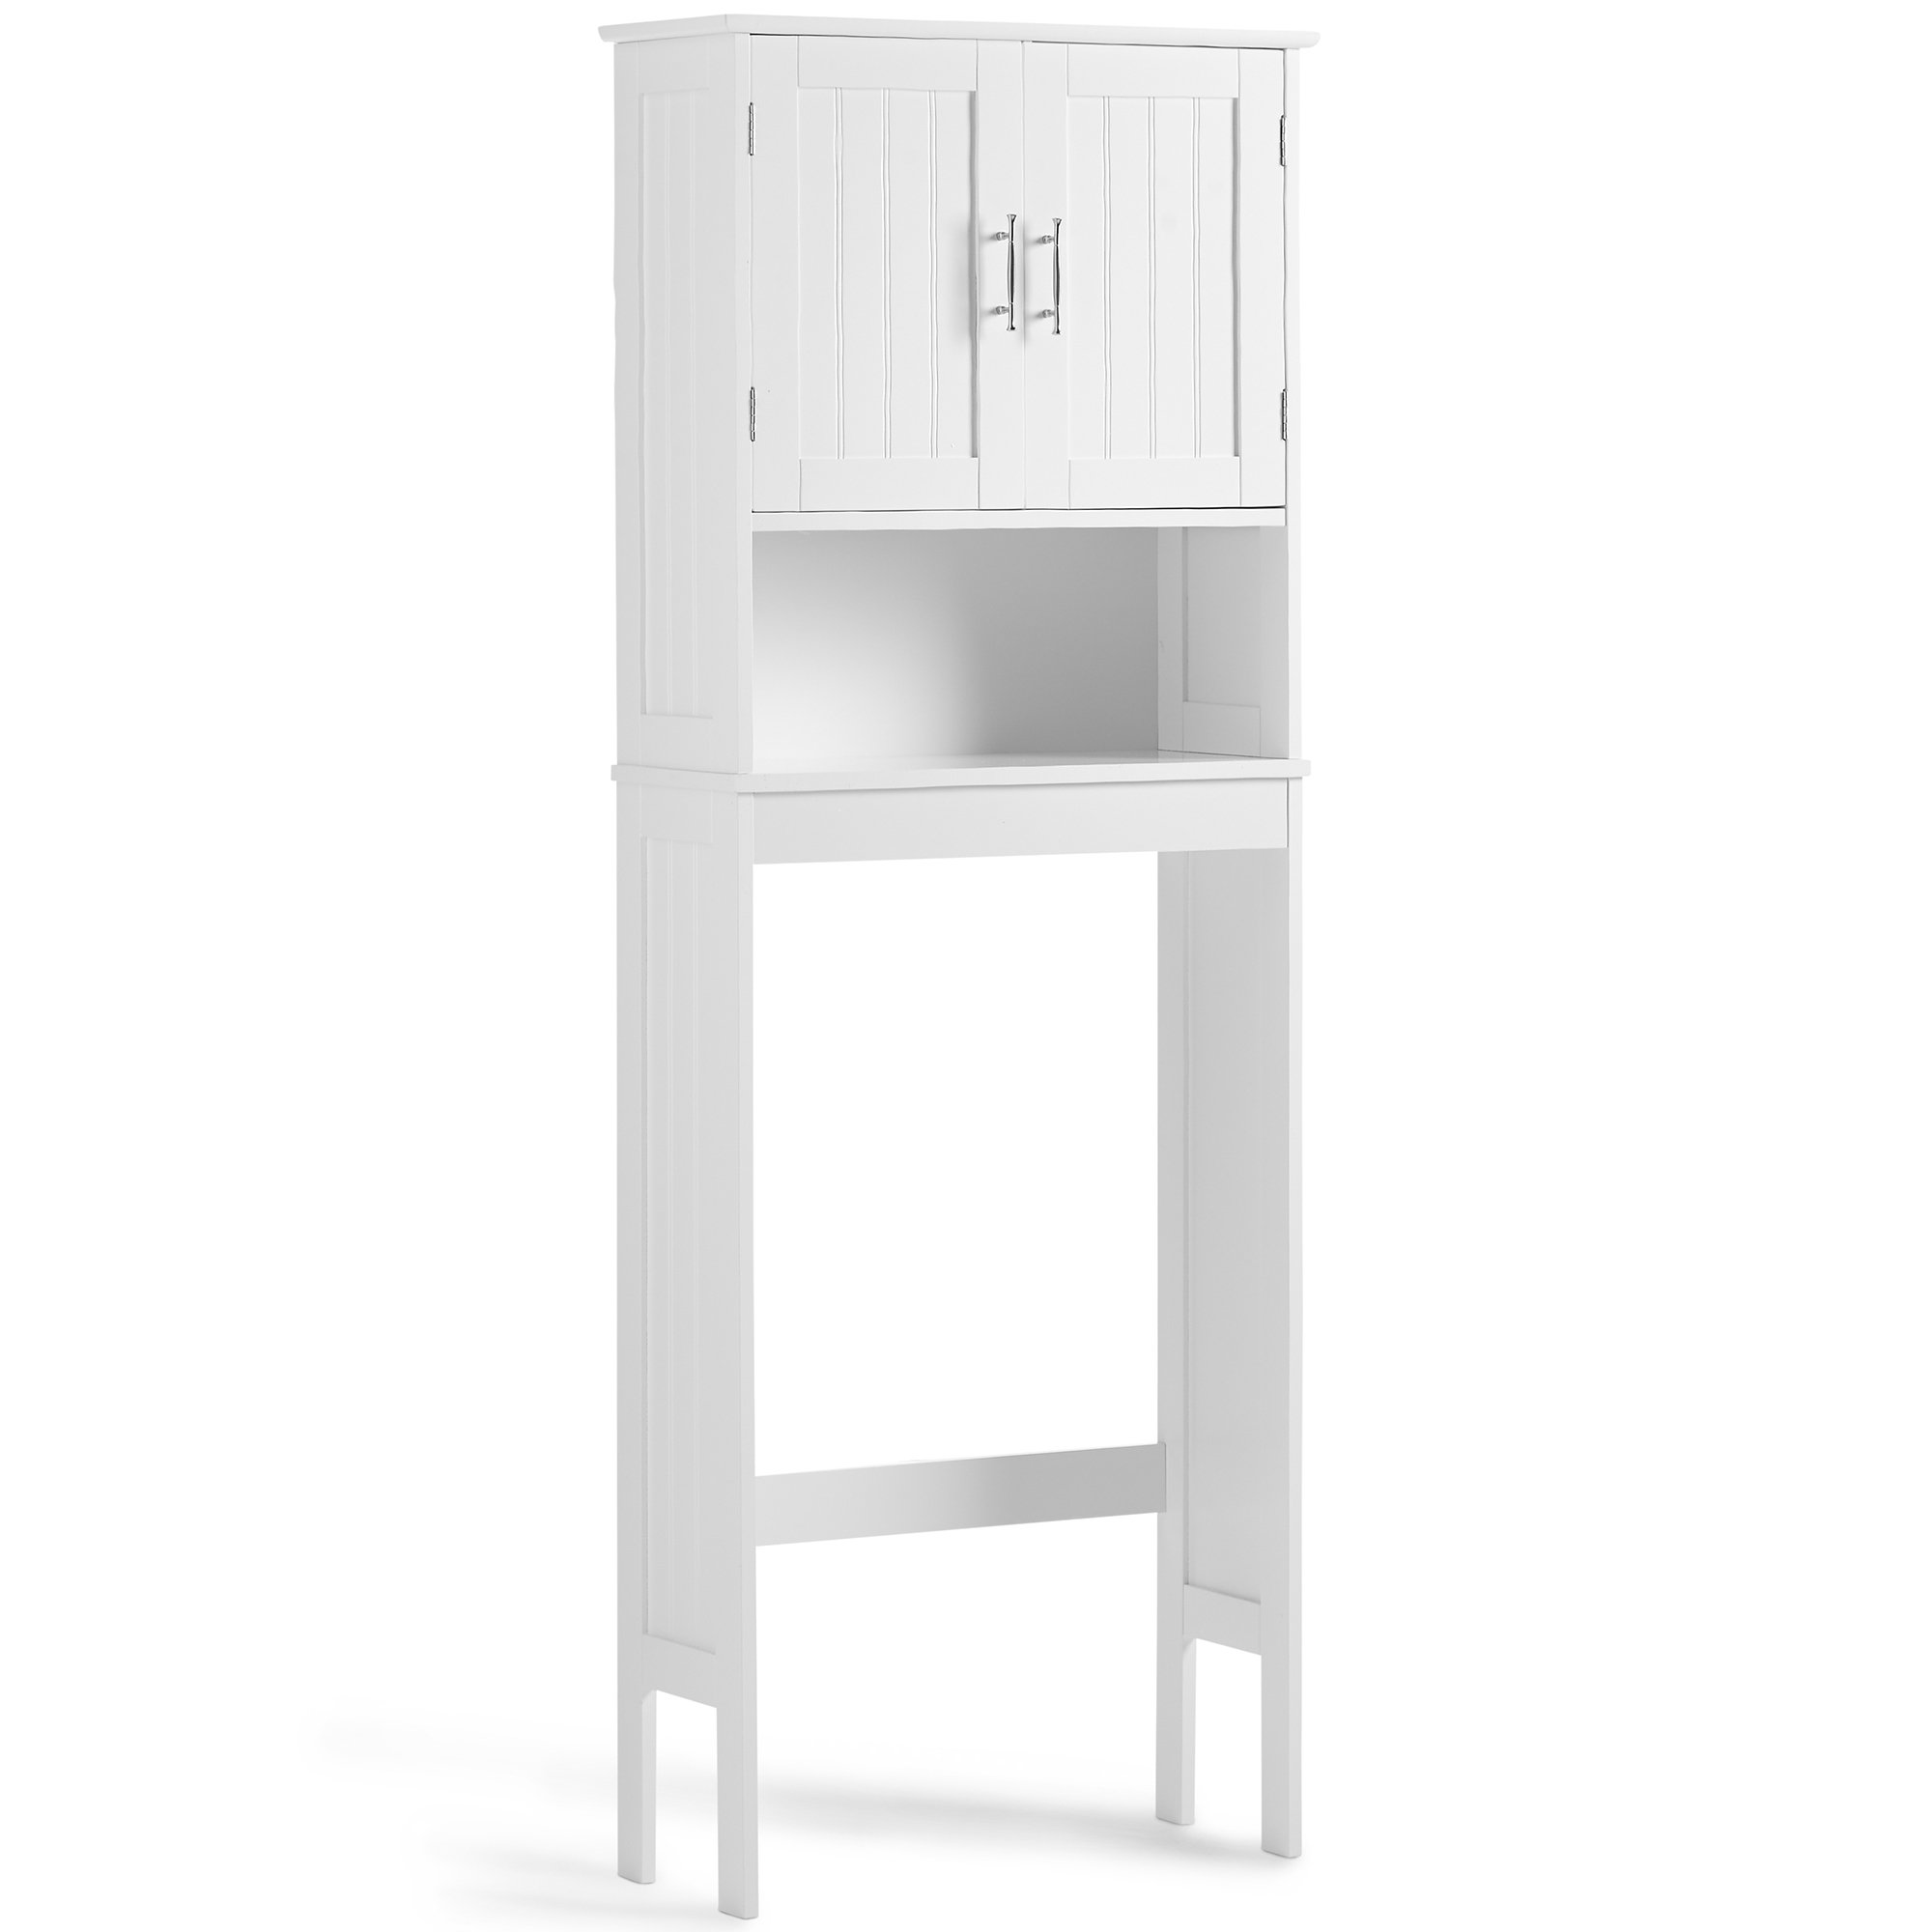 VonHaus Etagere Bathroom Cabinet Over the Toilet Storage Unit - Classic White Furniture with Chrome Handles (Includes All Hardware)